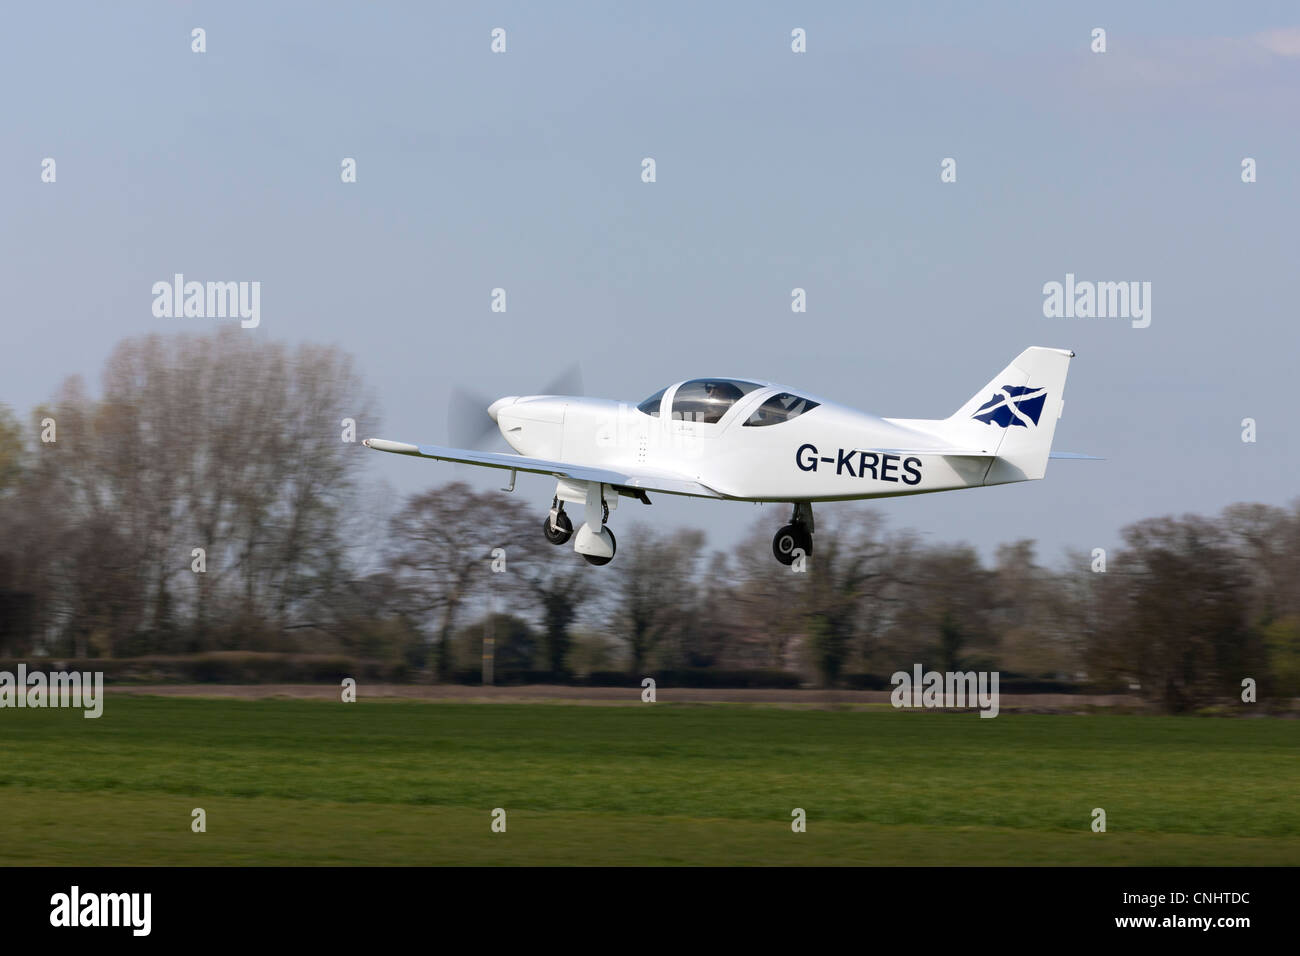 Rg Stock Photos & Rg Stock Images - Page 2 - Alamy